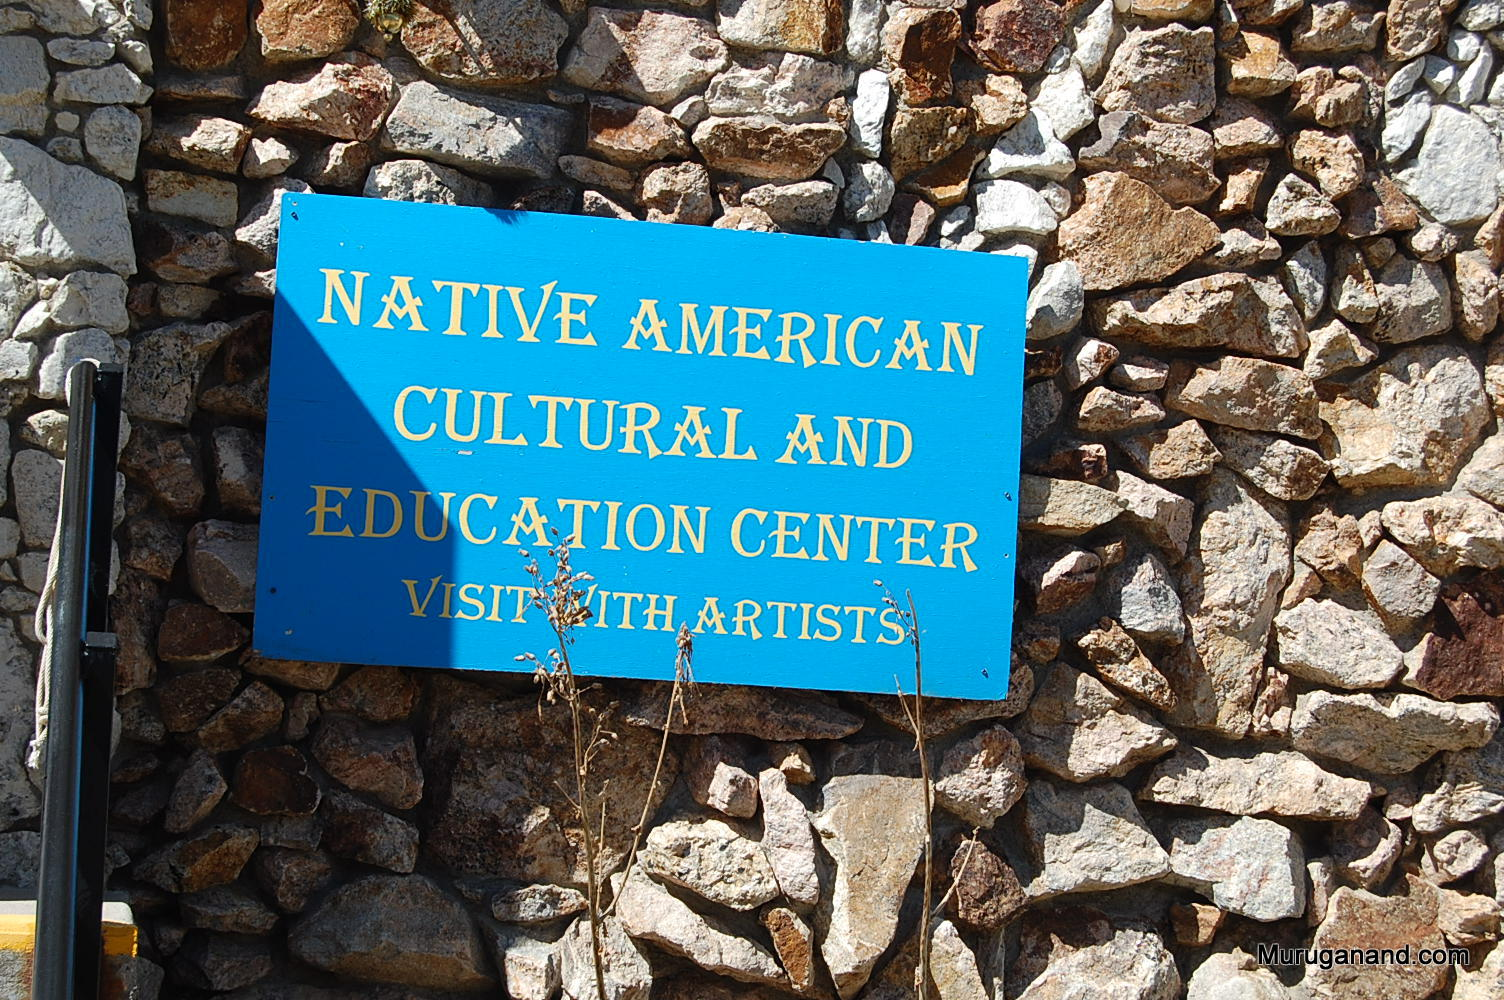 Exhibits from Native American Museum will follow the rest of the section.